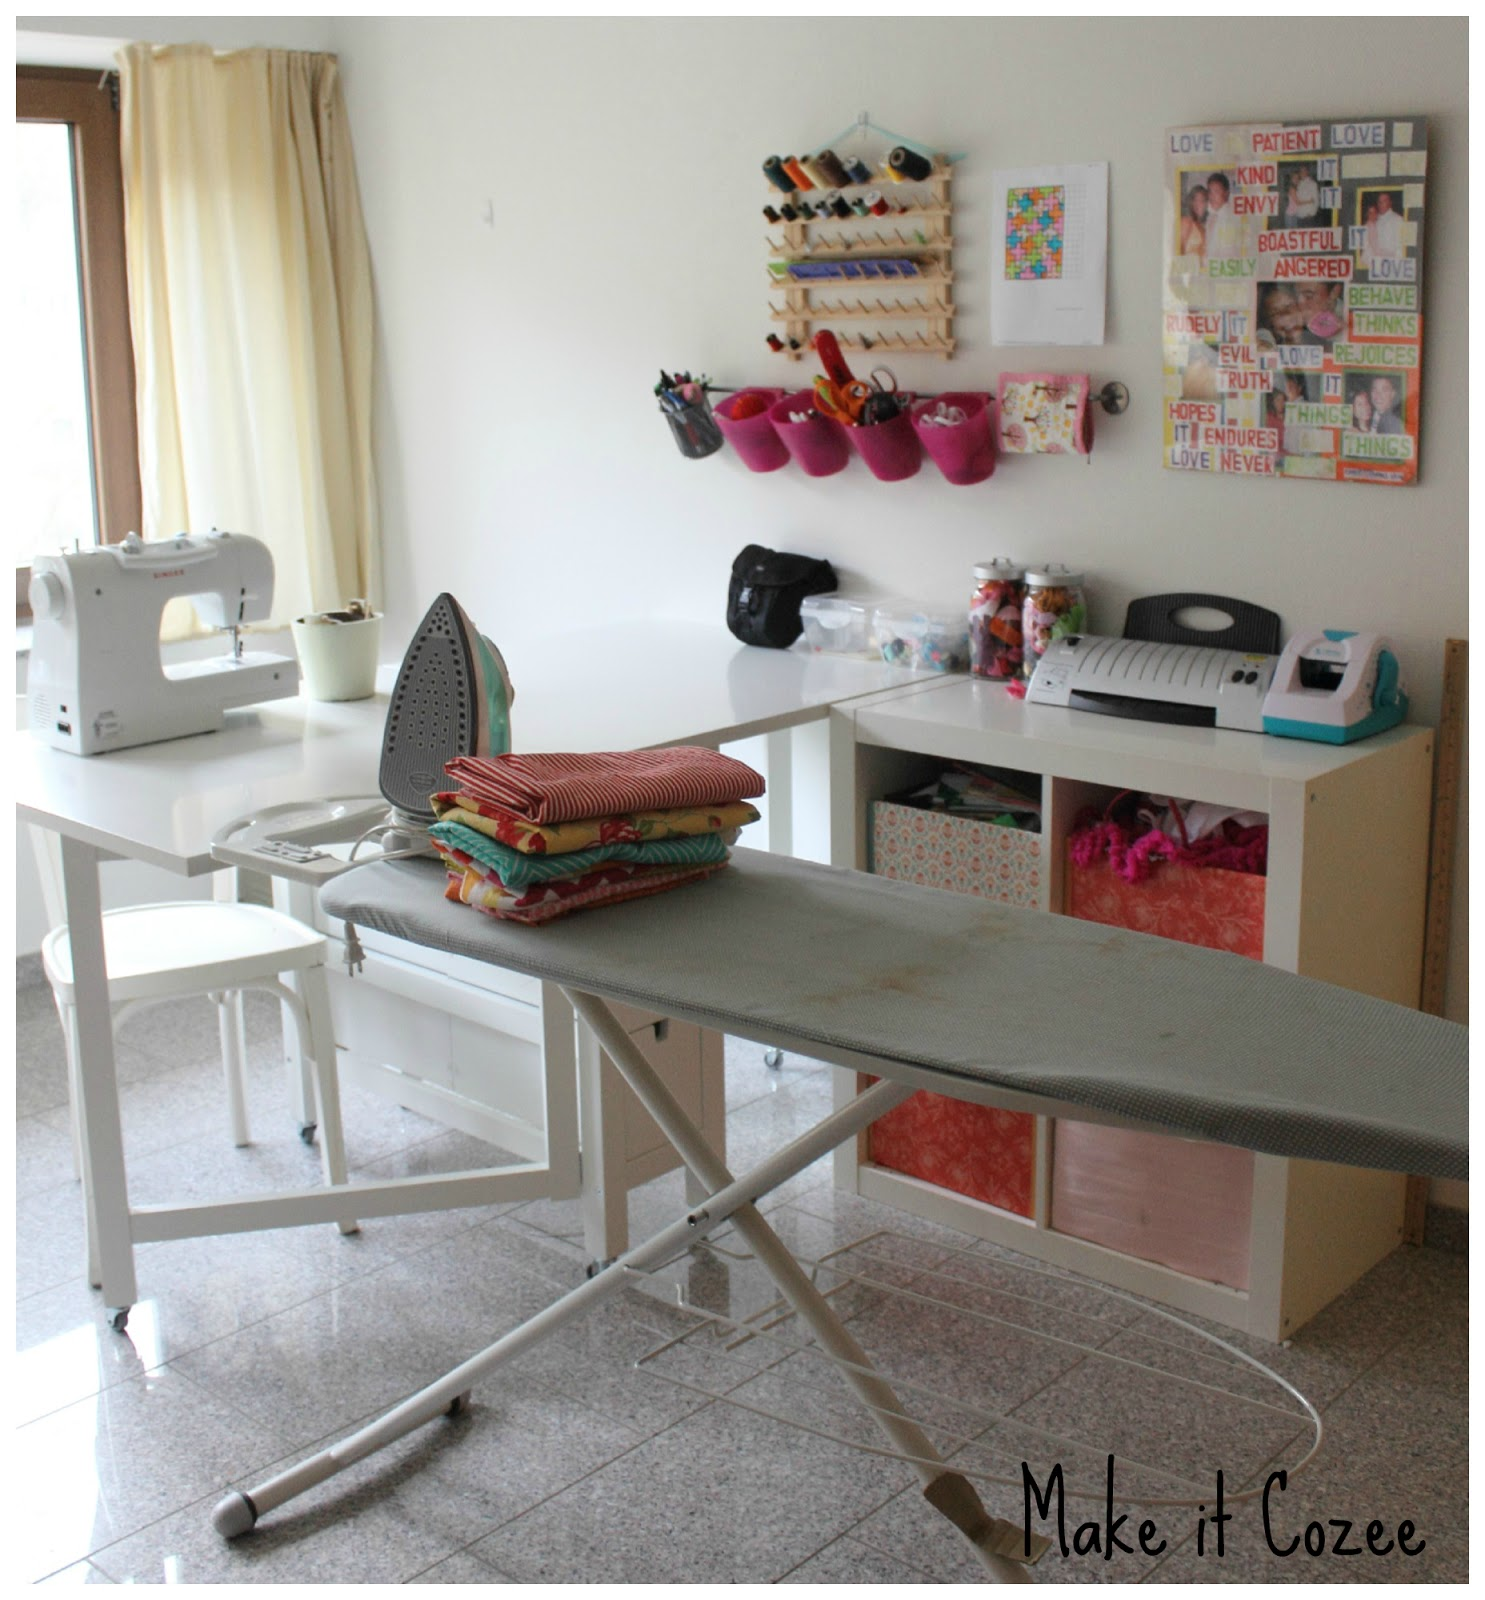 Norden Gateleg Table Make It Cozee Norden Gateleg With Wheels Sewing Table